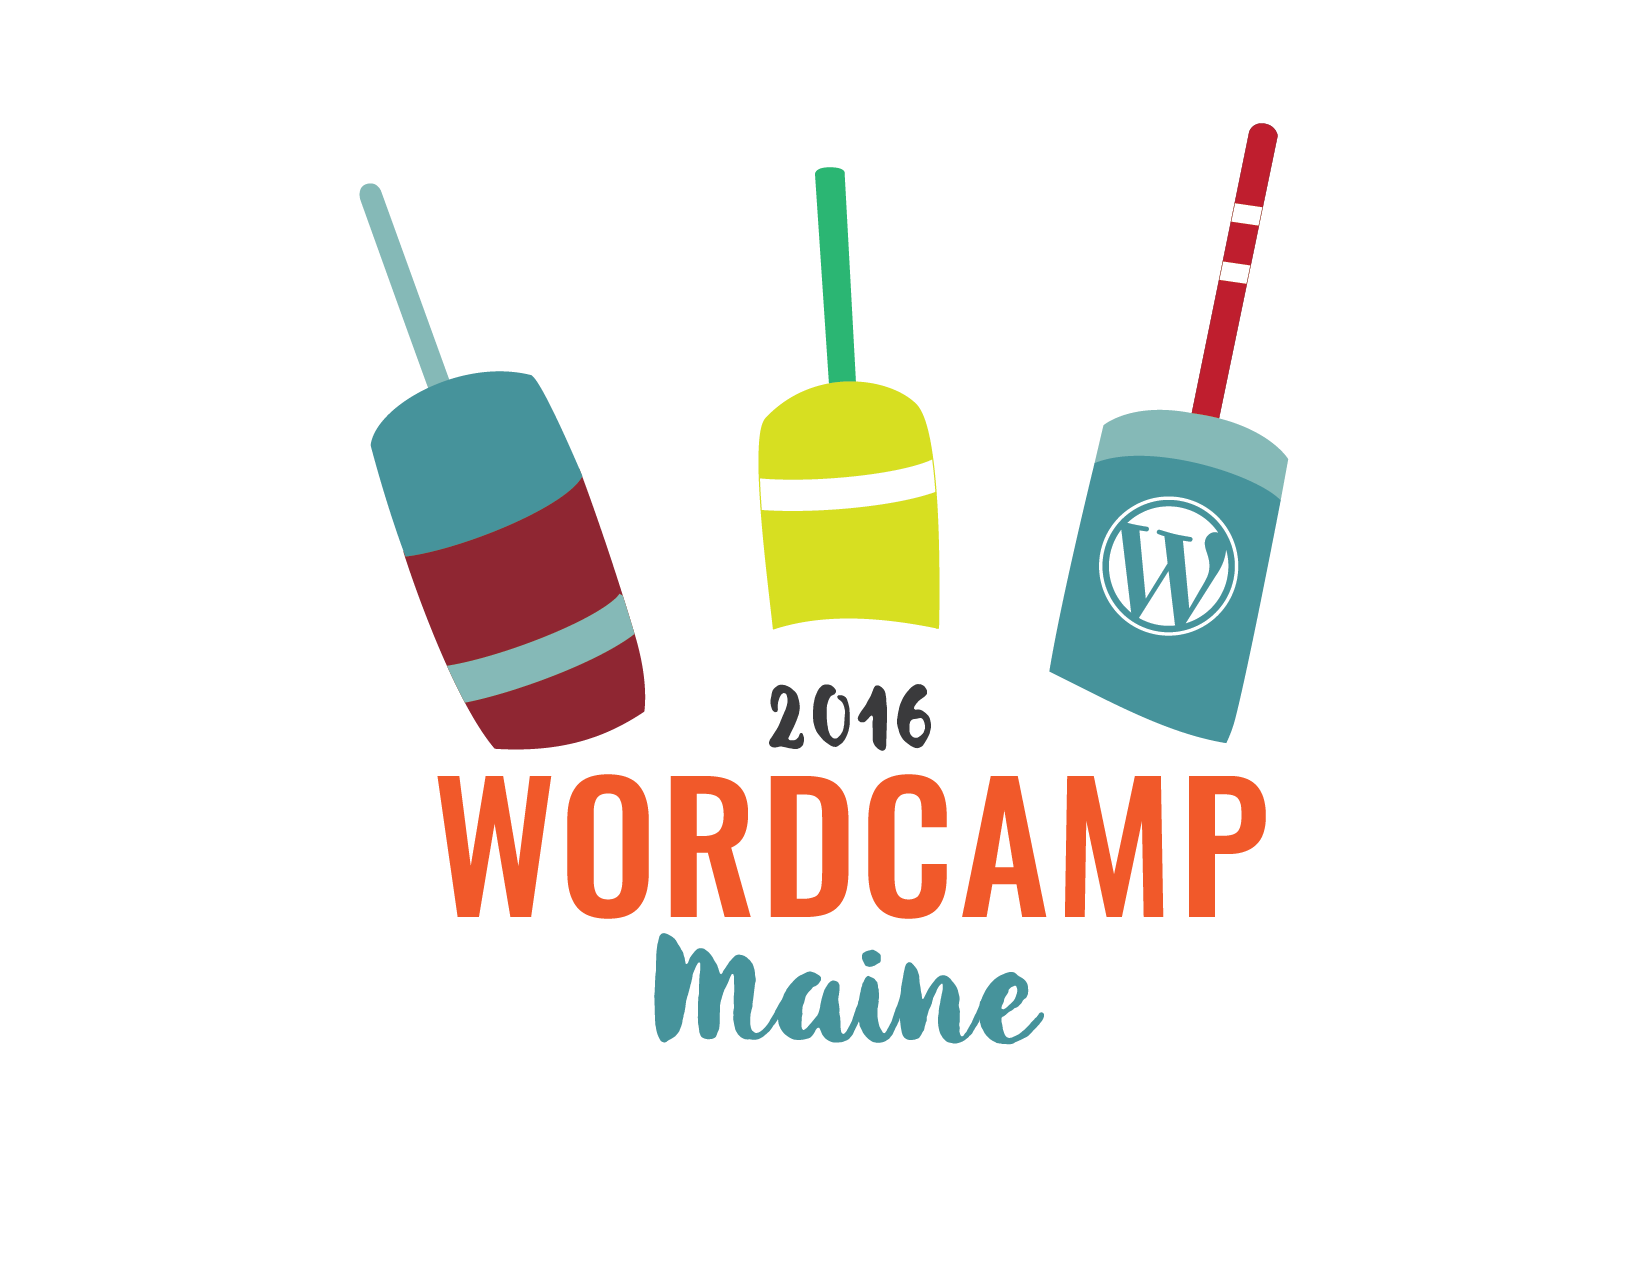 Wordcamp Maine 2016